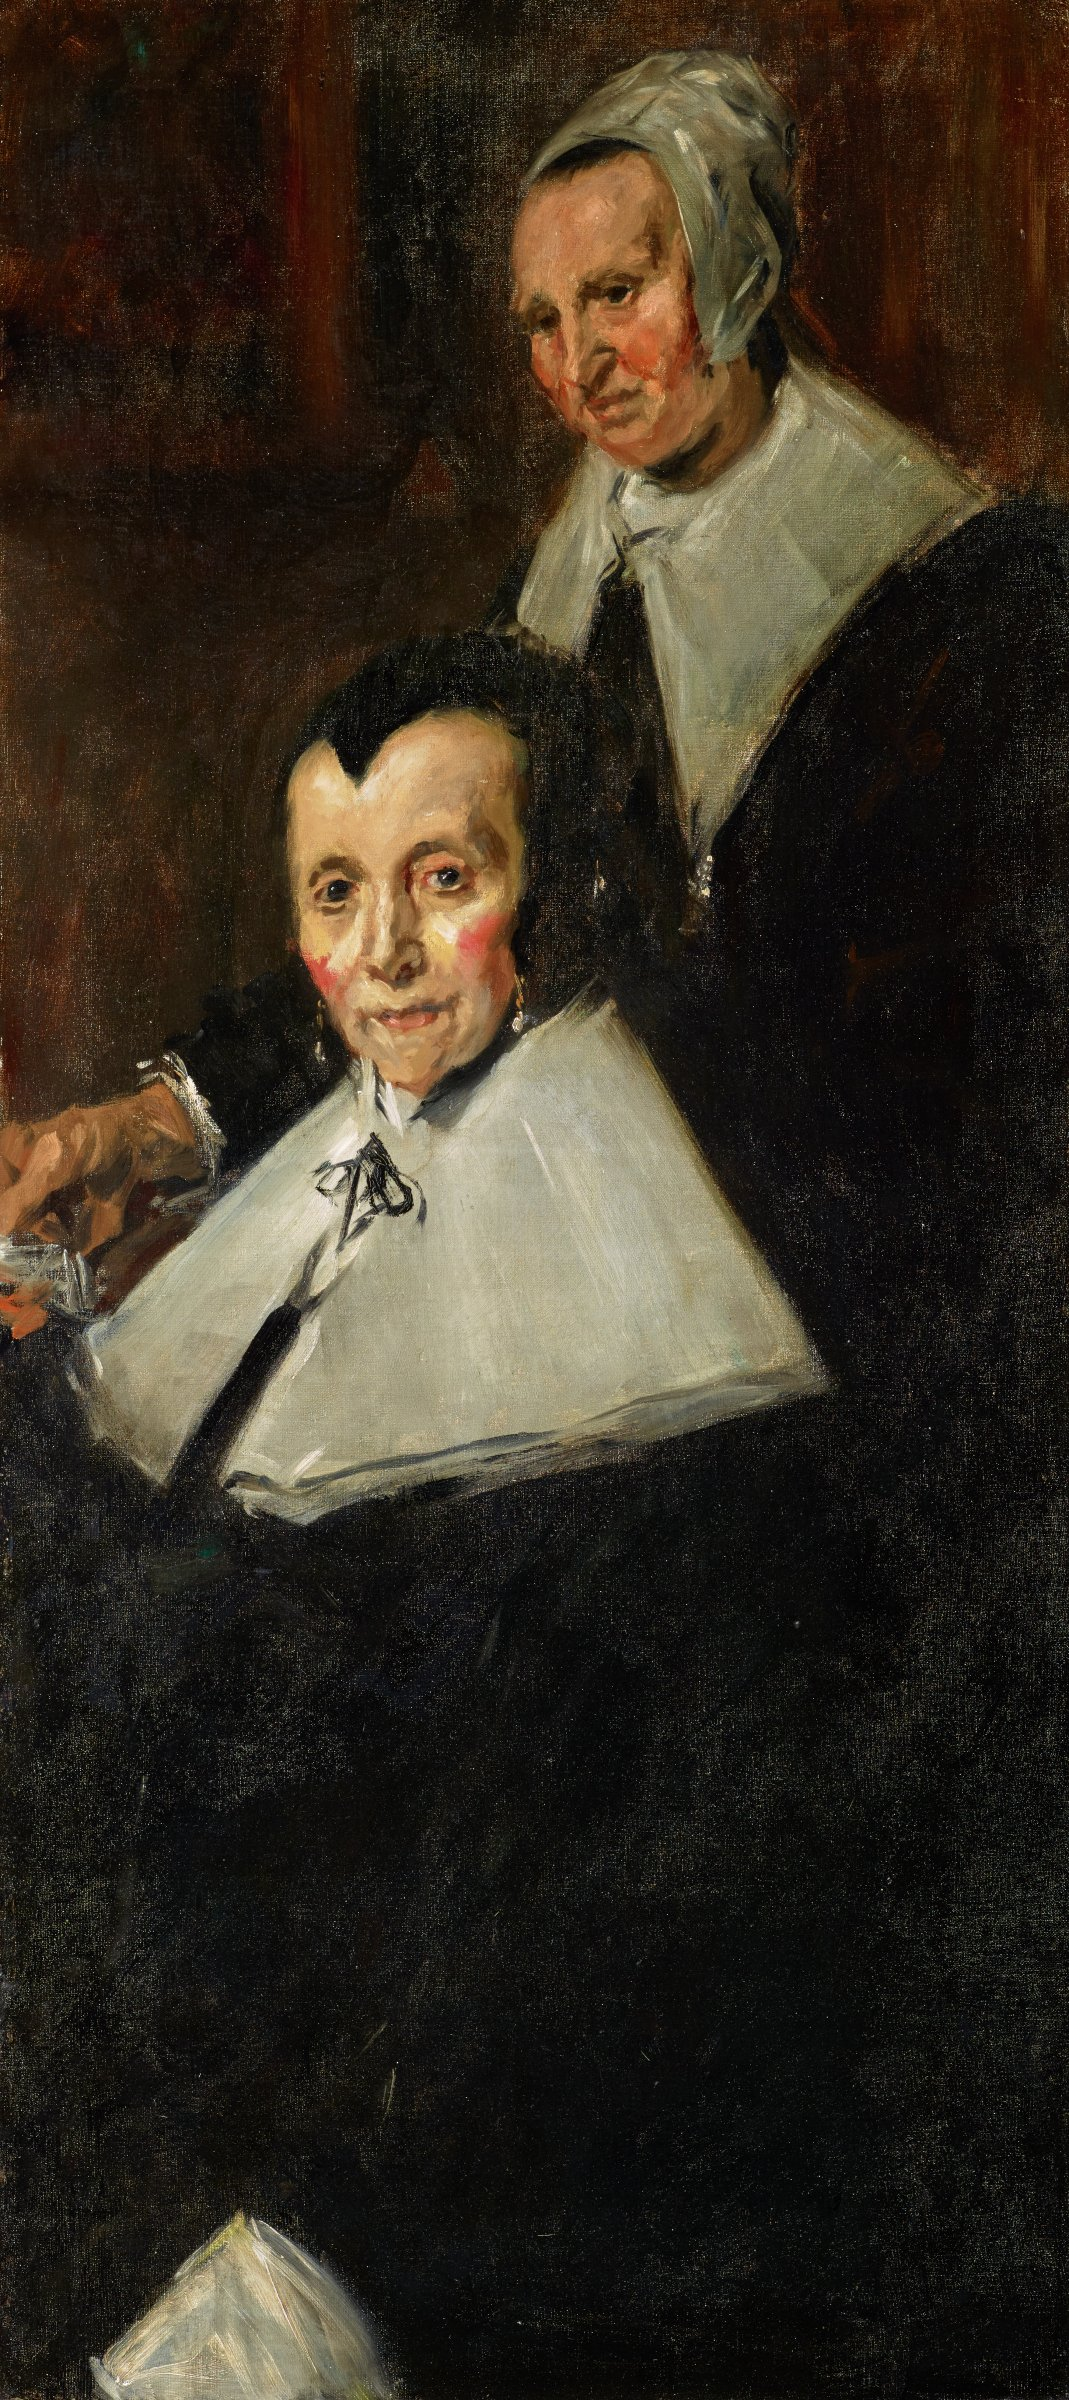 """Copy after the painting """"The Regentesses of the Old Men's Almshouse Haarlem"""" by the Dutch artist Frans Hals the Elder (about 1582–1666) painted about 1664 and now in the collection of the Frans Hals Museum in Haarlem, The Netherlands. The original canvas, measuring 67 1/8 x 98 1/4 x 4 1/2 inches, depicts the four regentesses--or female adminstrators--positioned around a small table (three sitting, one standing), with a fifth figure, their servant, standing at far right. Sargent's copy is a detail fo the far right of the original canvas, depicting just one of the regentesses (seated) and the servant (standing) dresses in traditional 17th-century Dutch attire. The seated figure wears a black dress, wide white collar, white cuffs, drop earrings, and a black skullcap.  The standing woman wears a black dress with a wide white collar and white cap."""